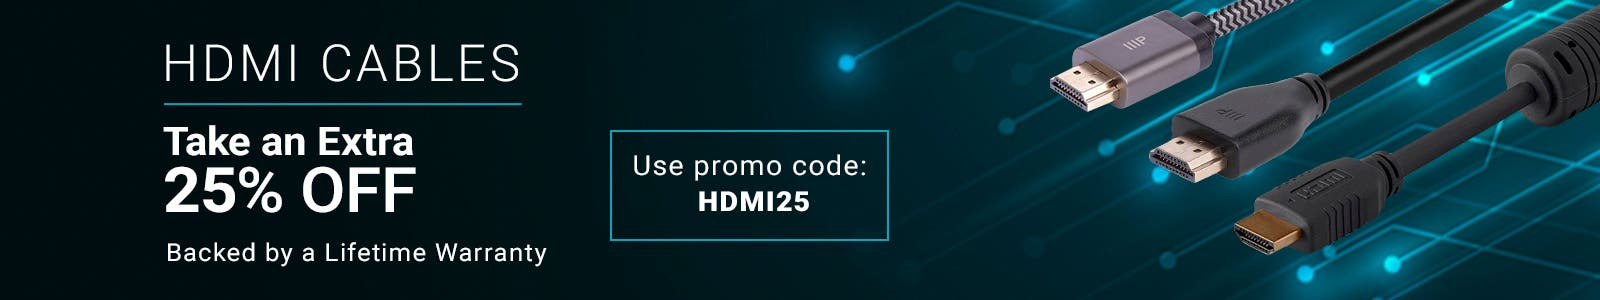 HDMI Cables , Take an Extra 25% Off Backed by a lifetime warranty. Use promo code: HDMI25